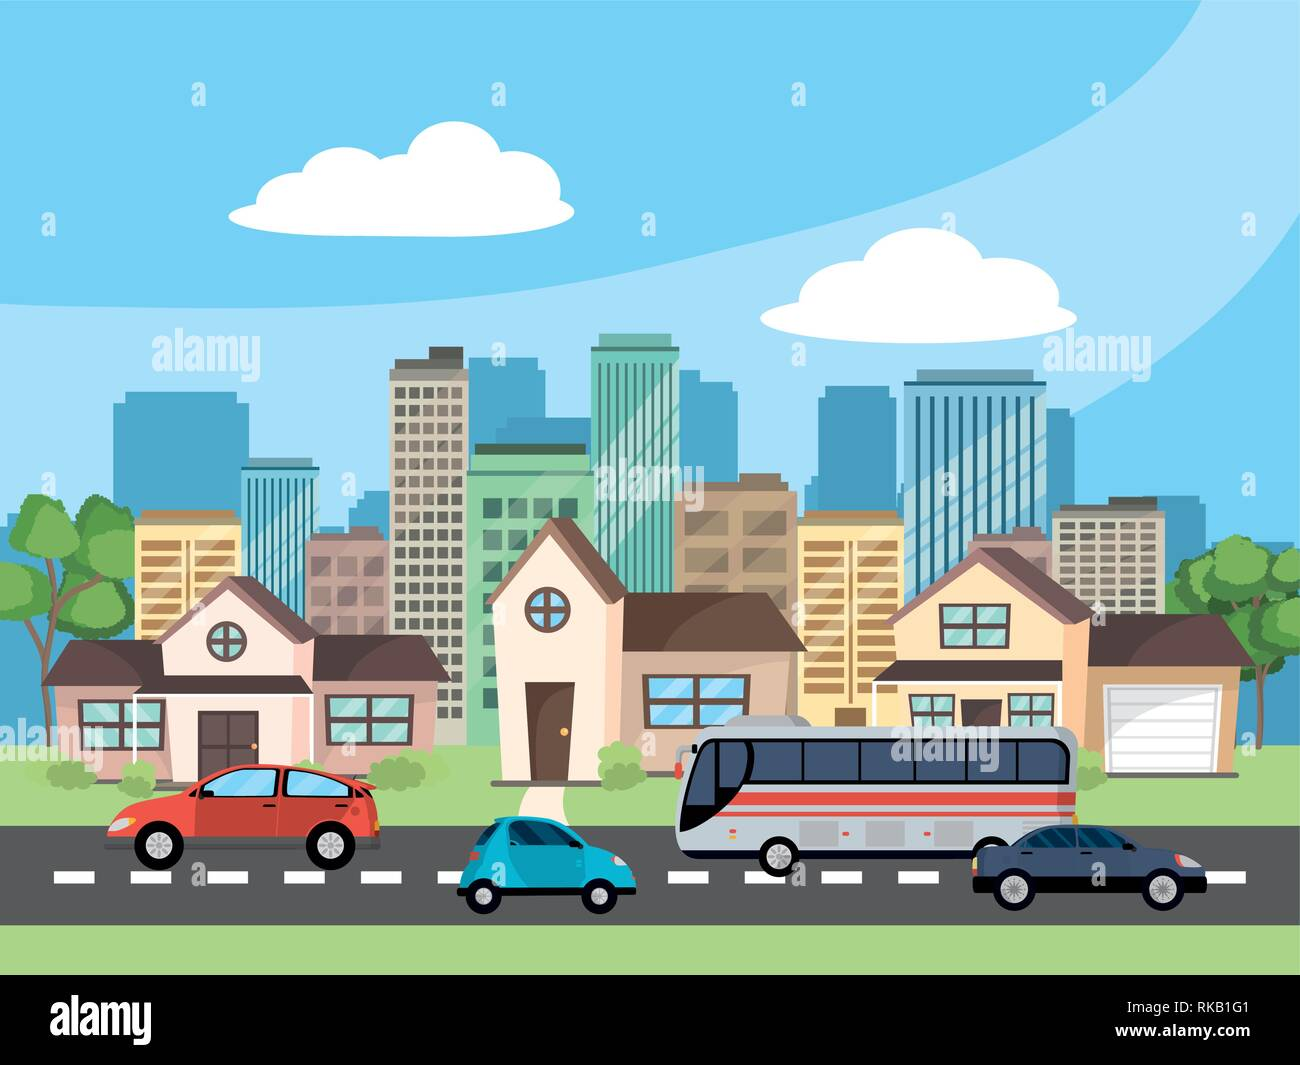 transportation concept cars with bus at urban scene in front city landscape and houses cartoon vector illustration graphic design - Stock Image